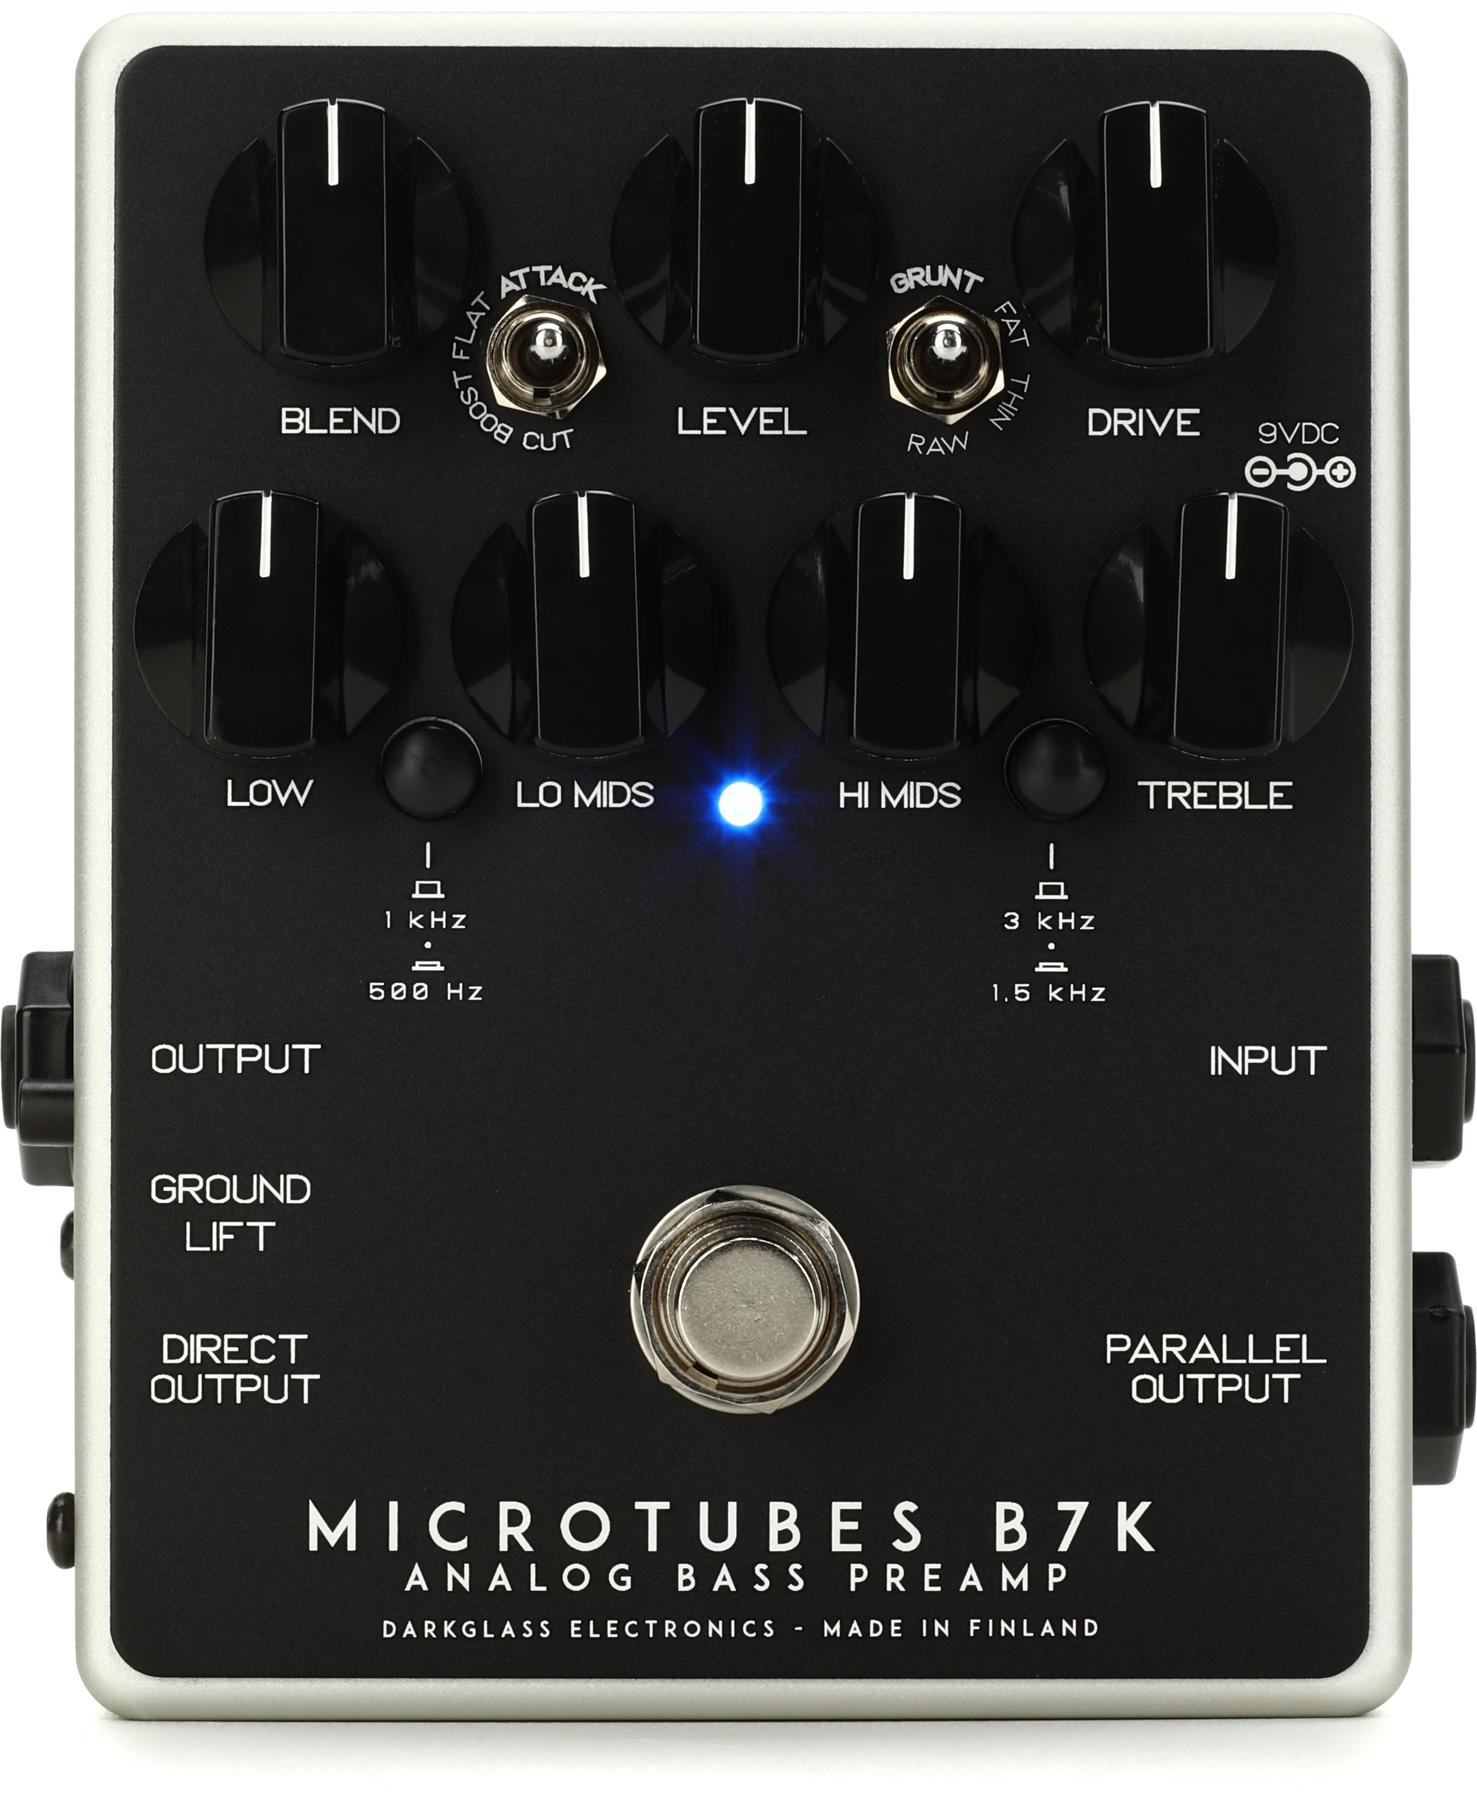 Darkglass Microtubes B7k V2 Bass Preamp Pedal Sweetwater Collection Of Circuit Boards Used For Source Audio Pedals Image 1